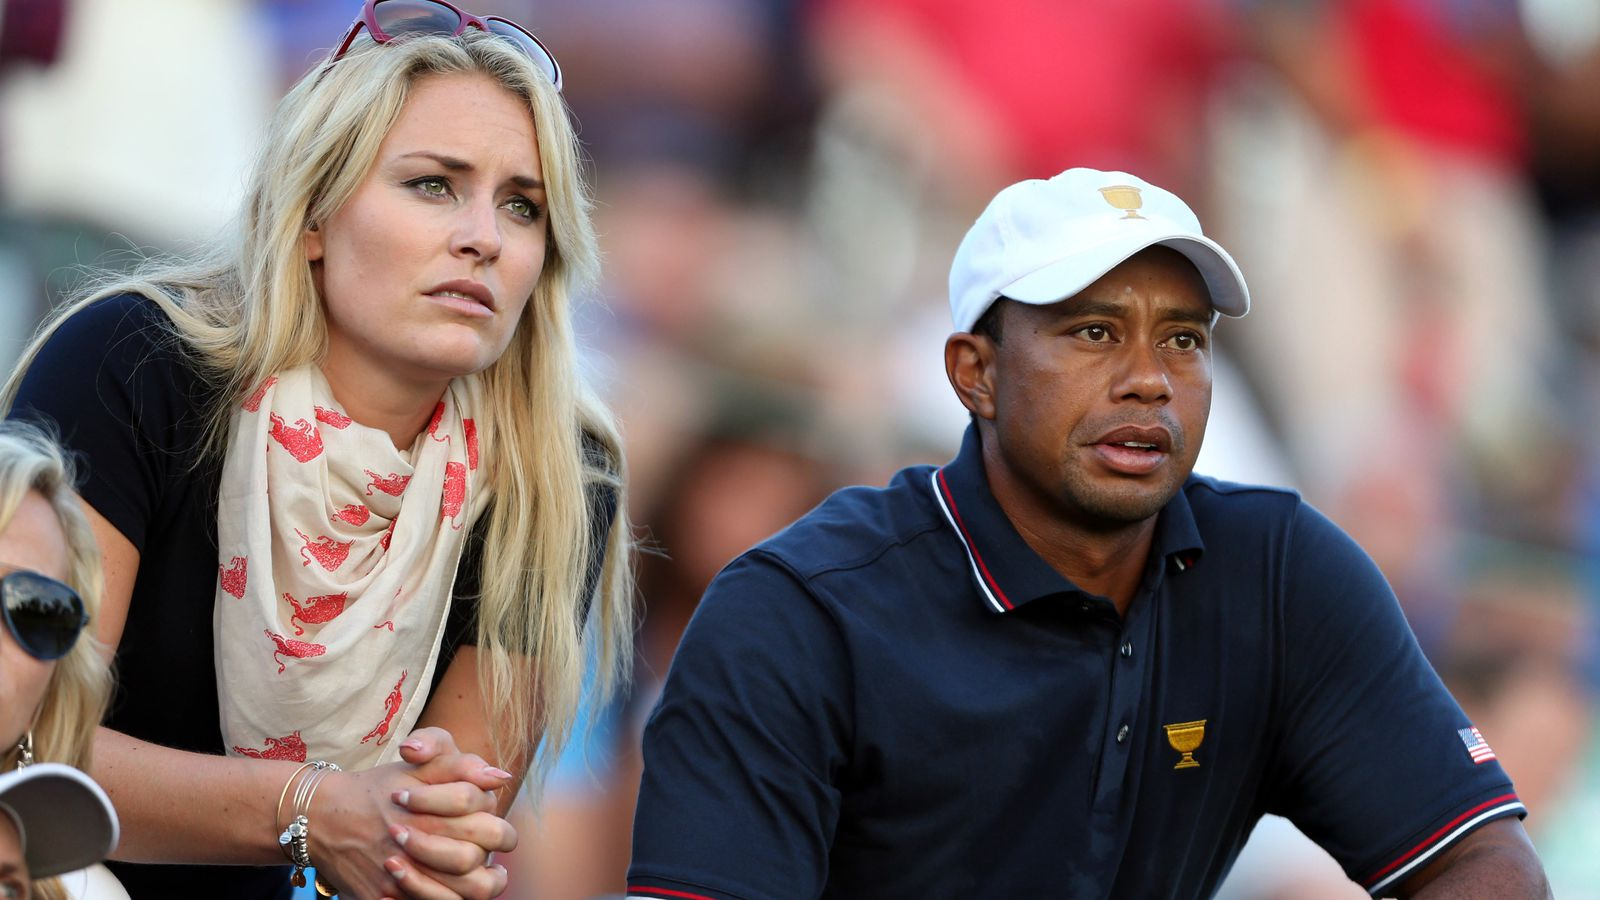 What is tiger woods ex